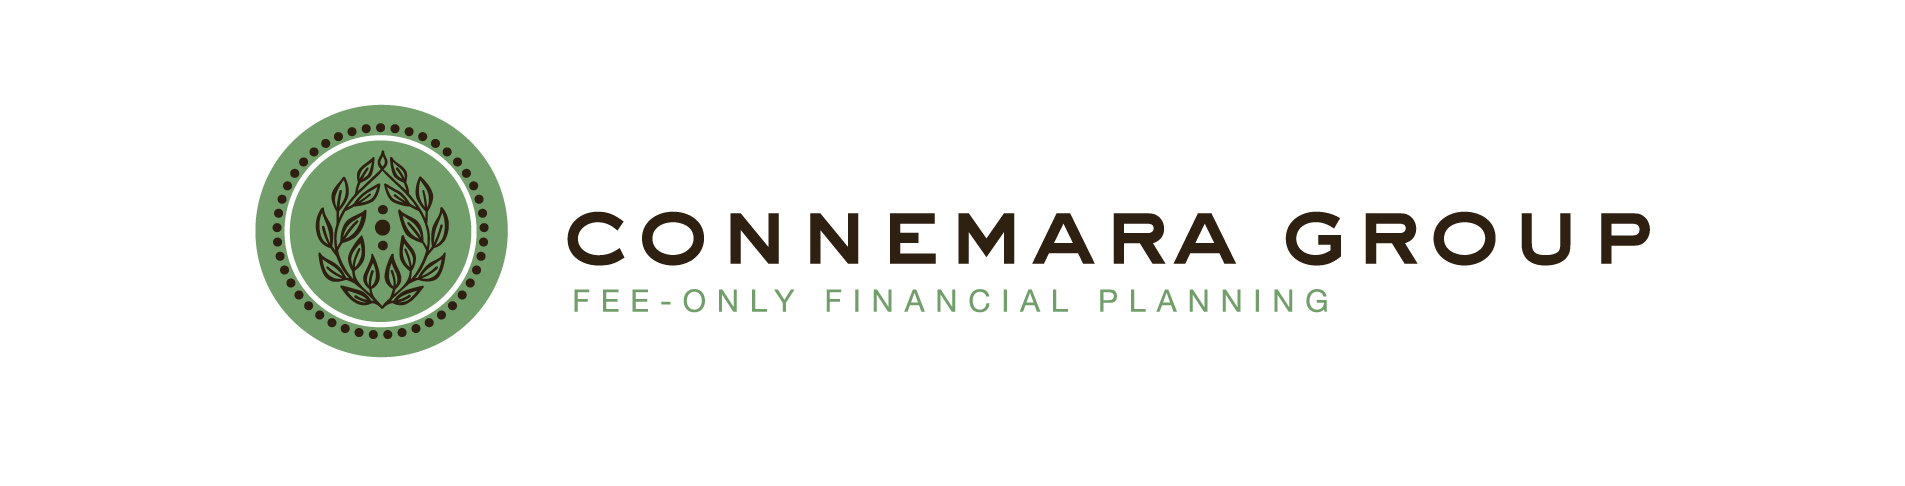 Connemara Group logo design